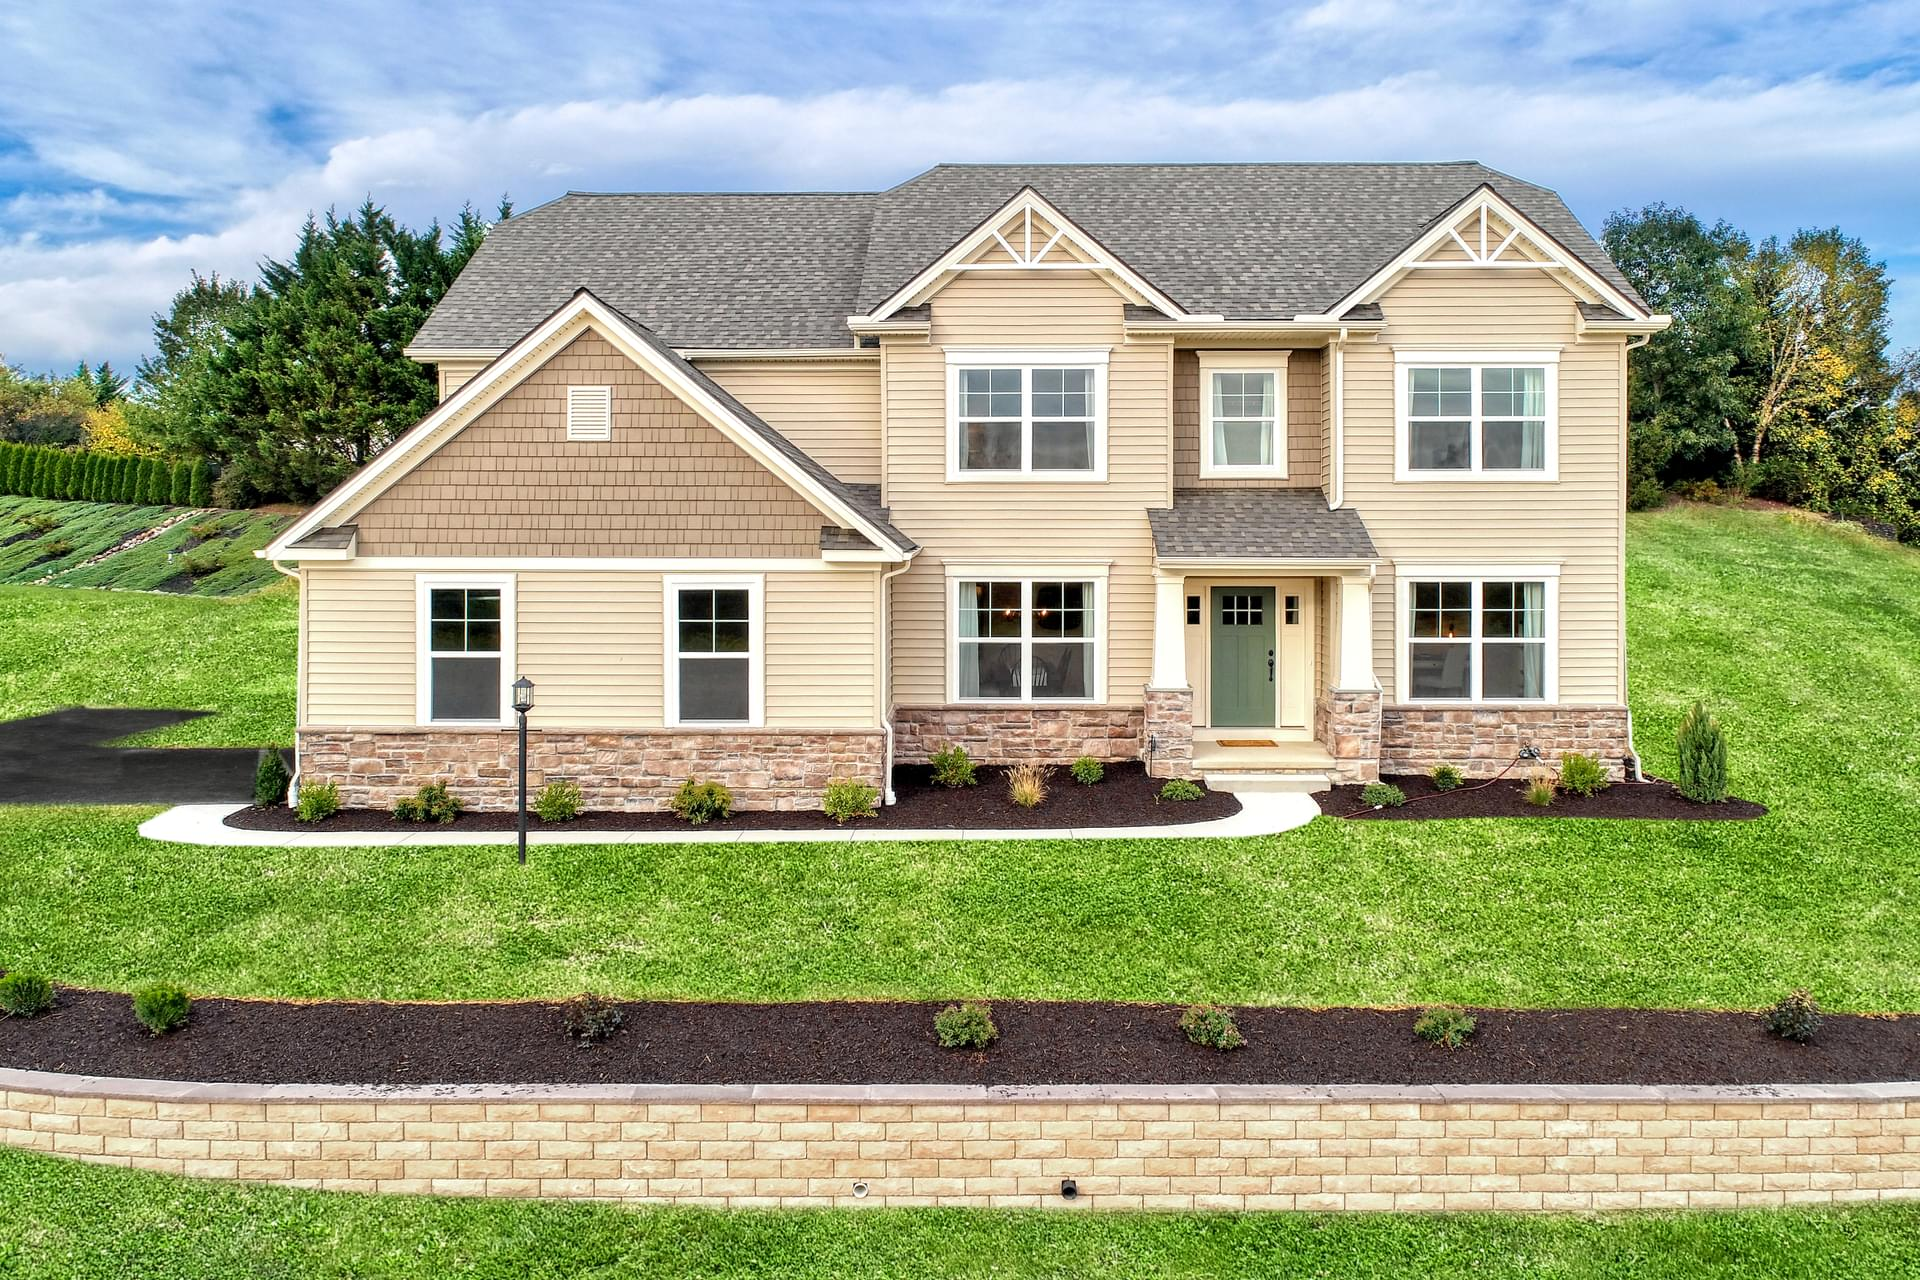 Berks Homes in Lot #FH-4 18 Marina Dr, Camp Hill, PA 17011 PA